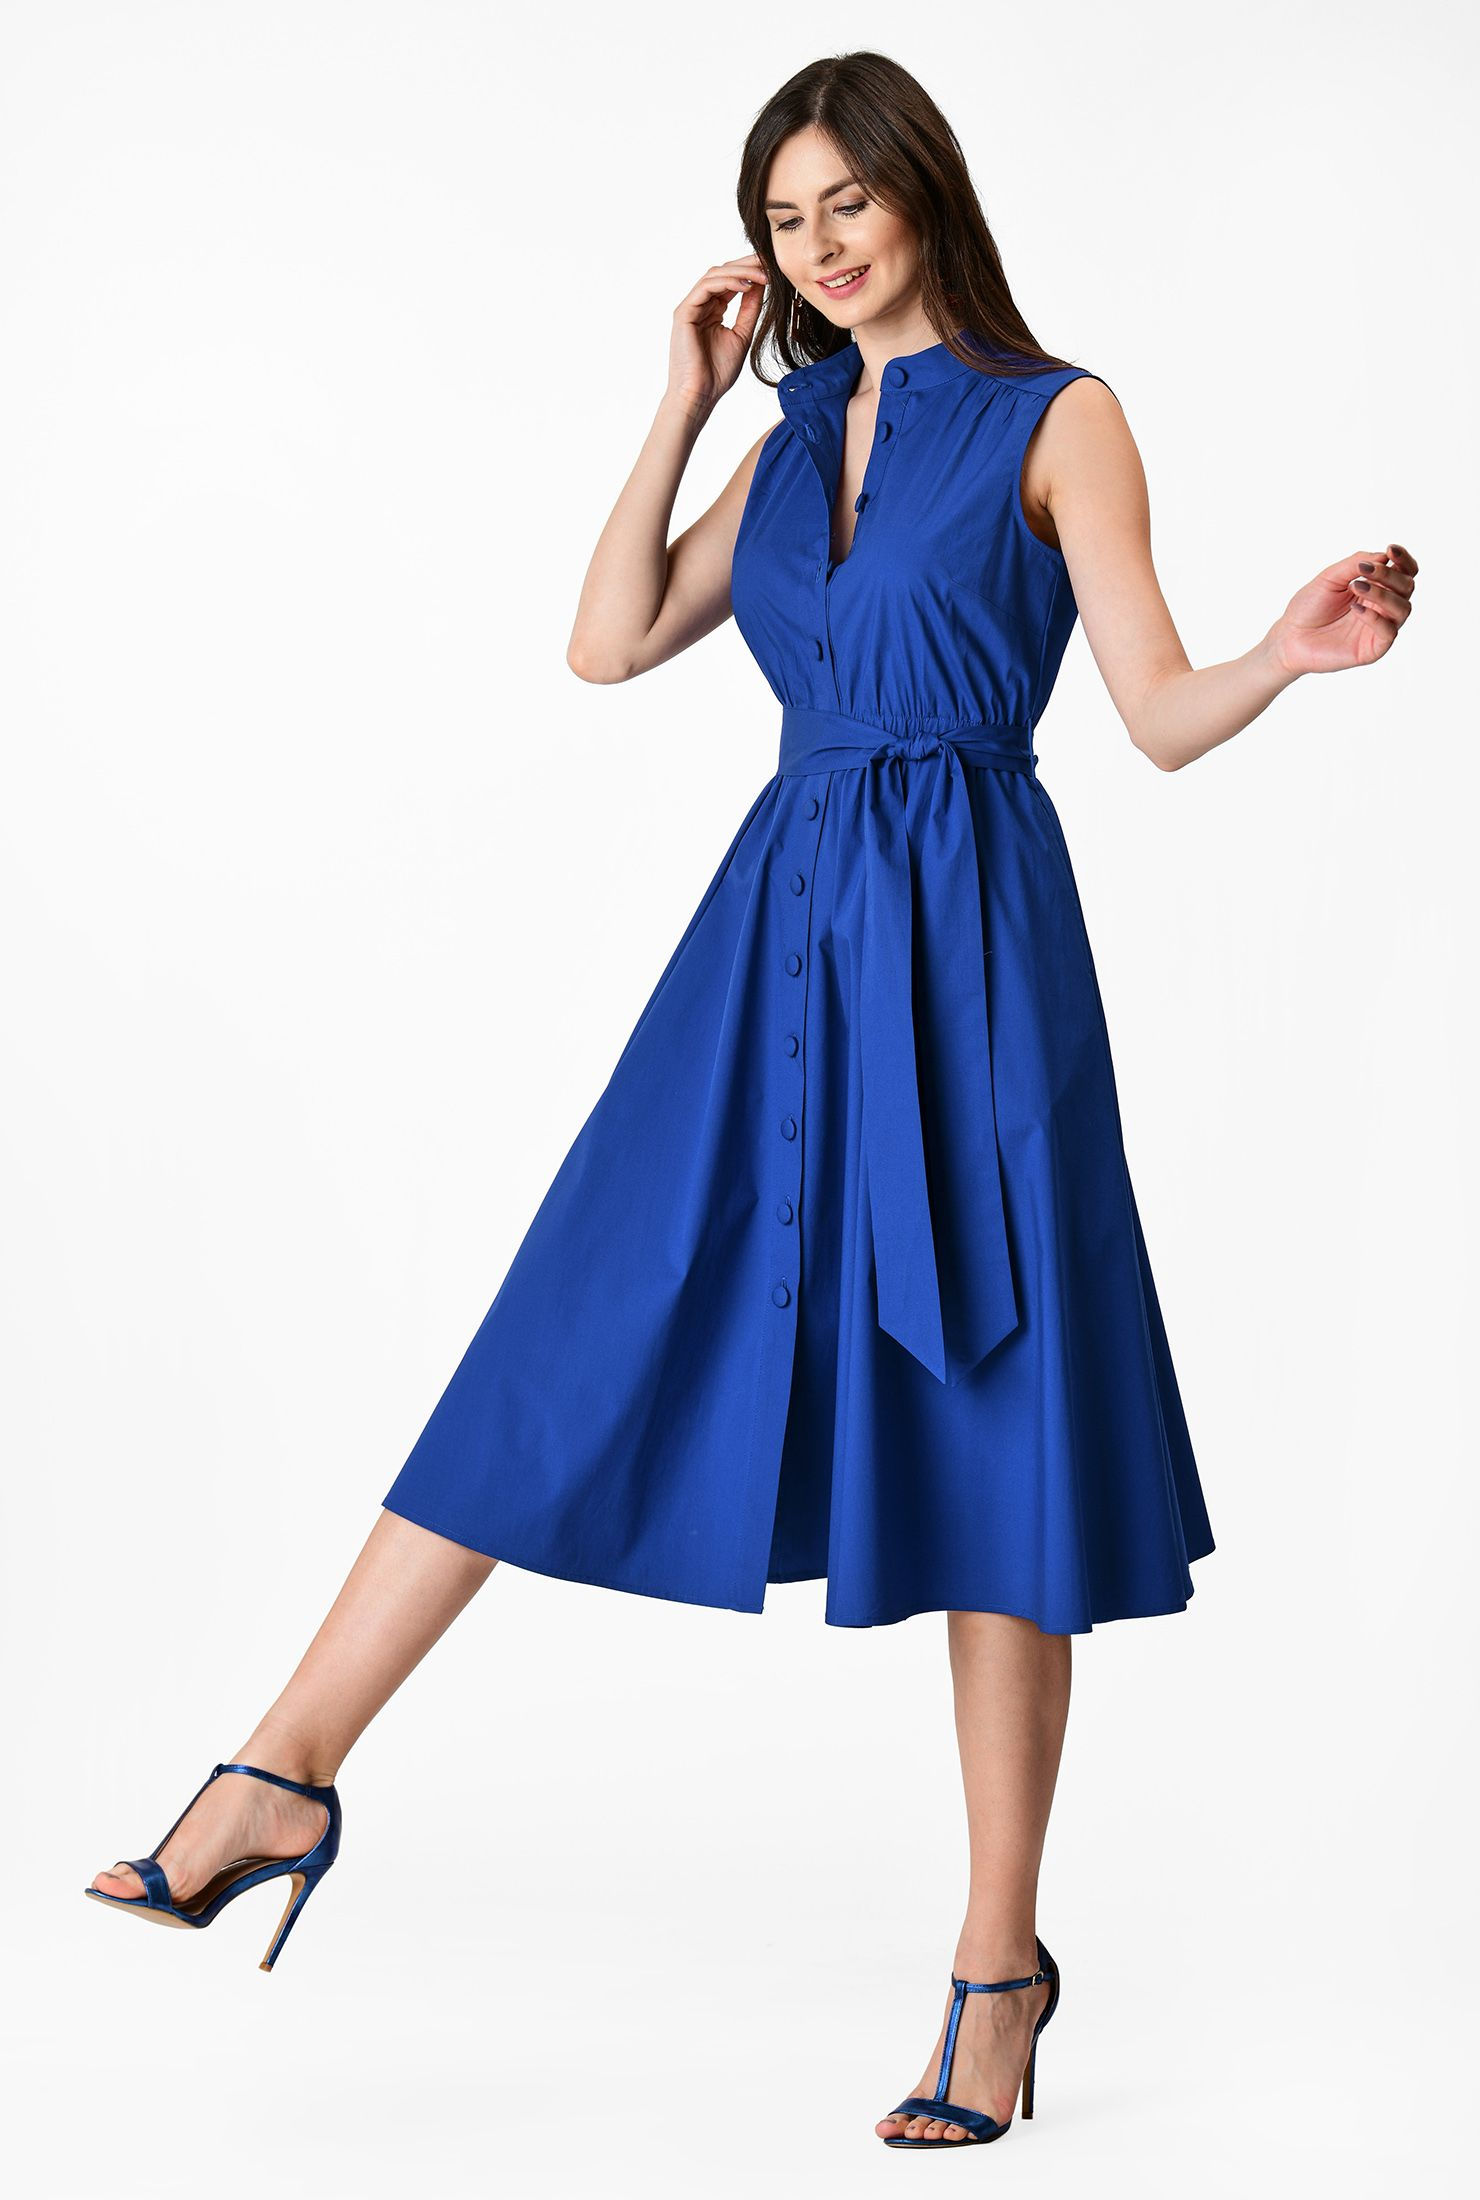 f431c527a17 Women's Fashion Clothing 0-36W and Custom   Clothes in 2019 ...